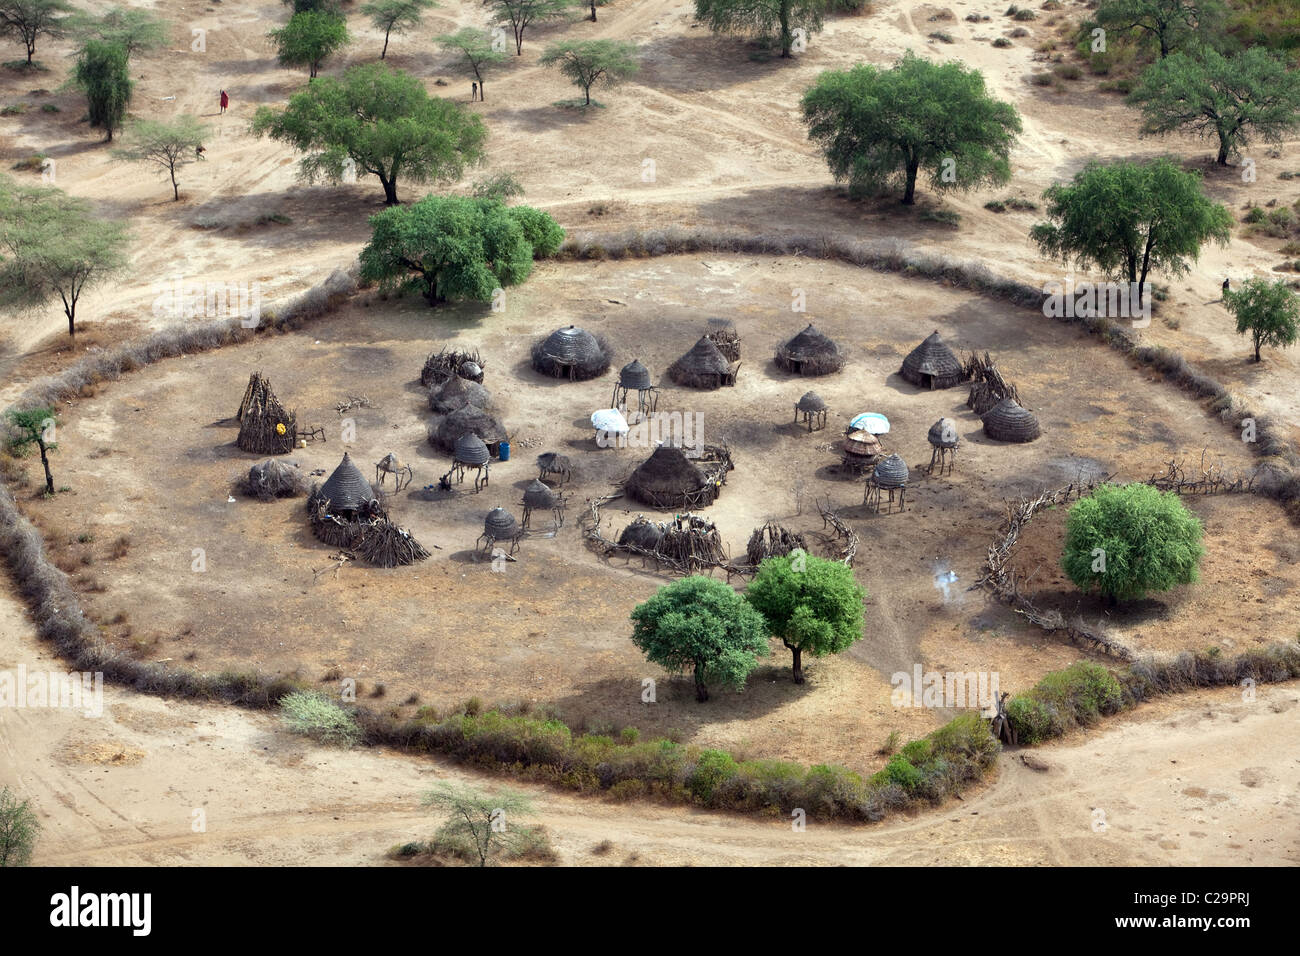 Aerial view of Riwoto, Eastern Equatoria, South Sudan. - Stock Image